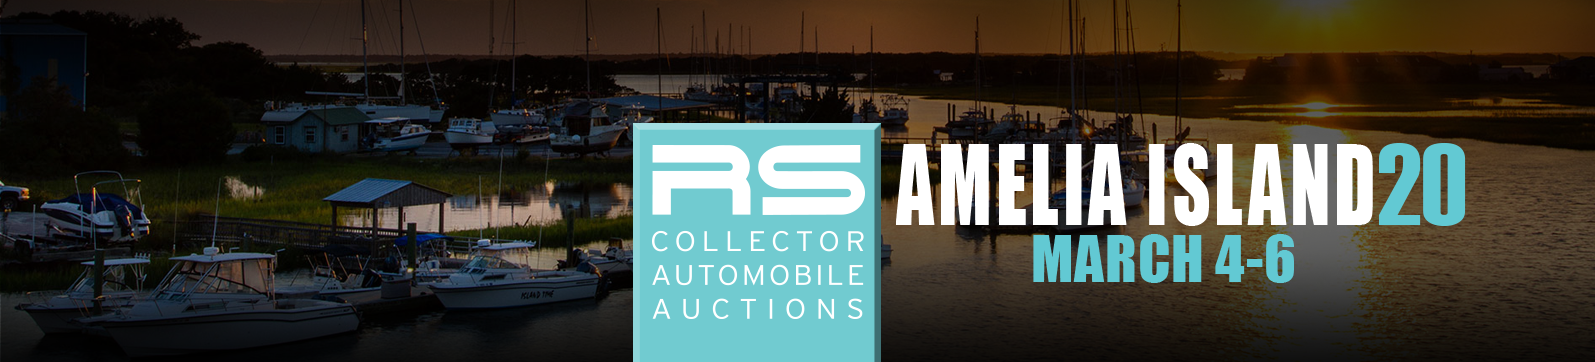 March Motors Jacksonville Fl >> Russo And Steele Amelia Island Florida March 6 8 2019